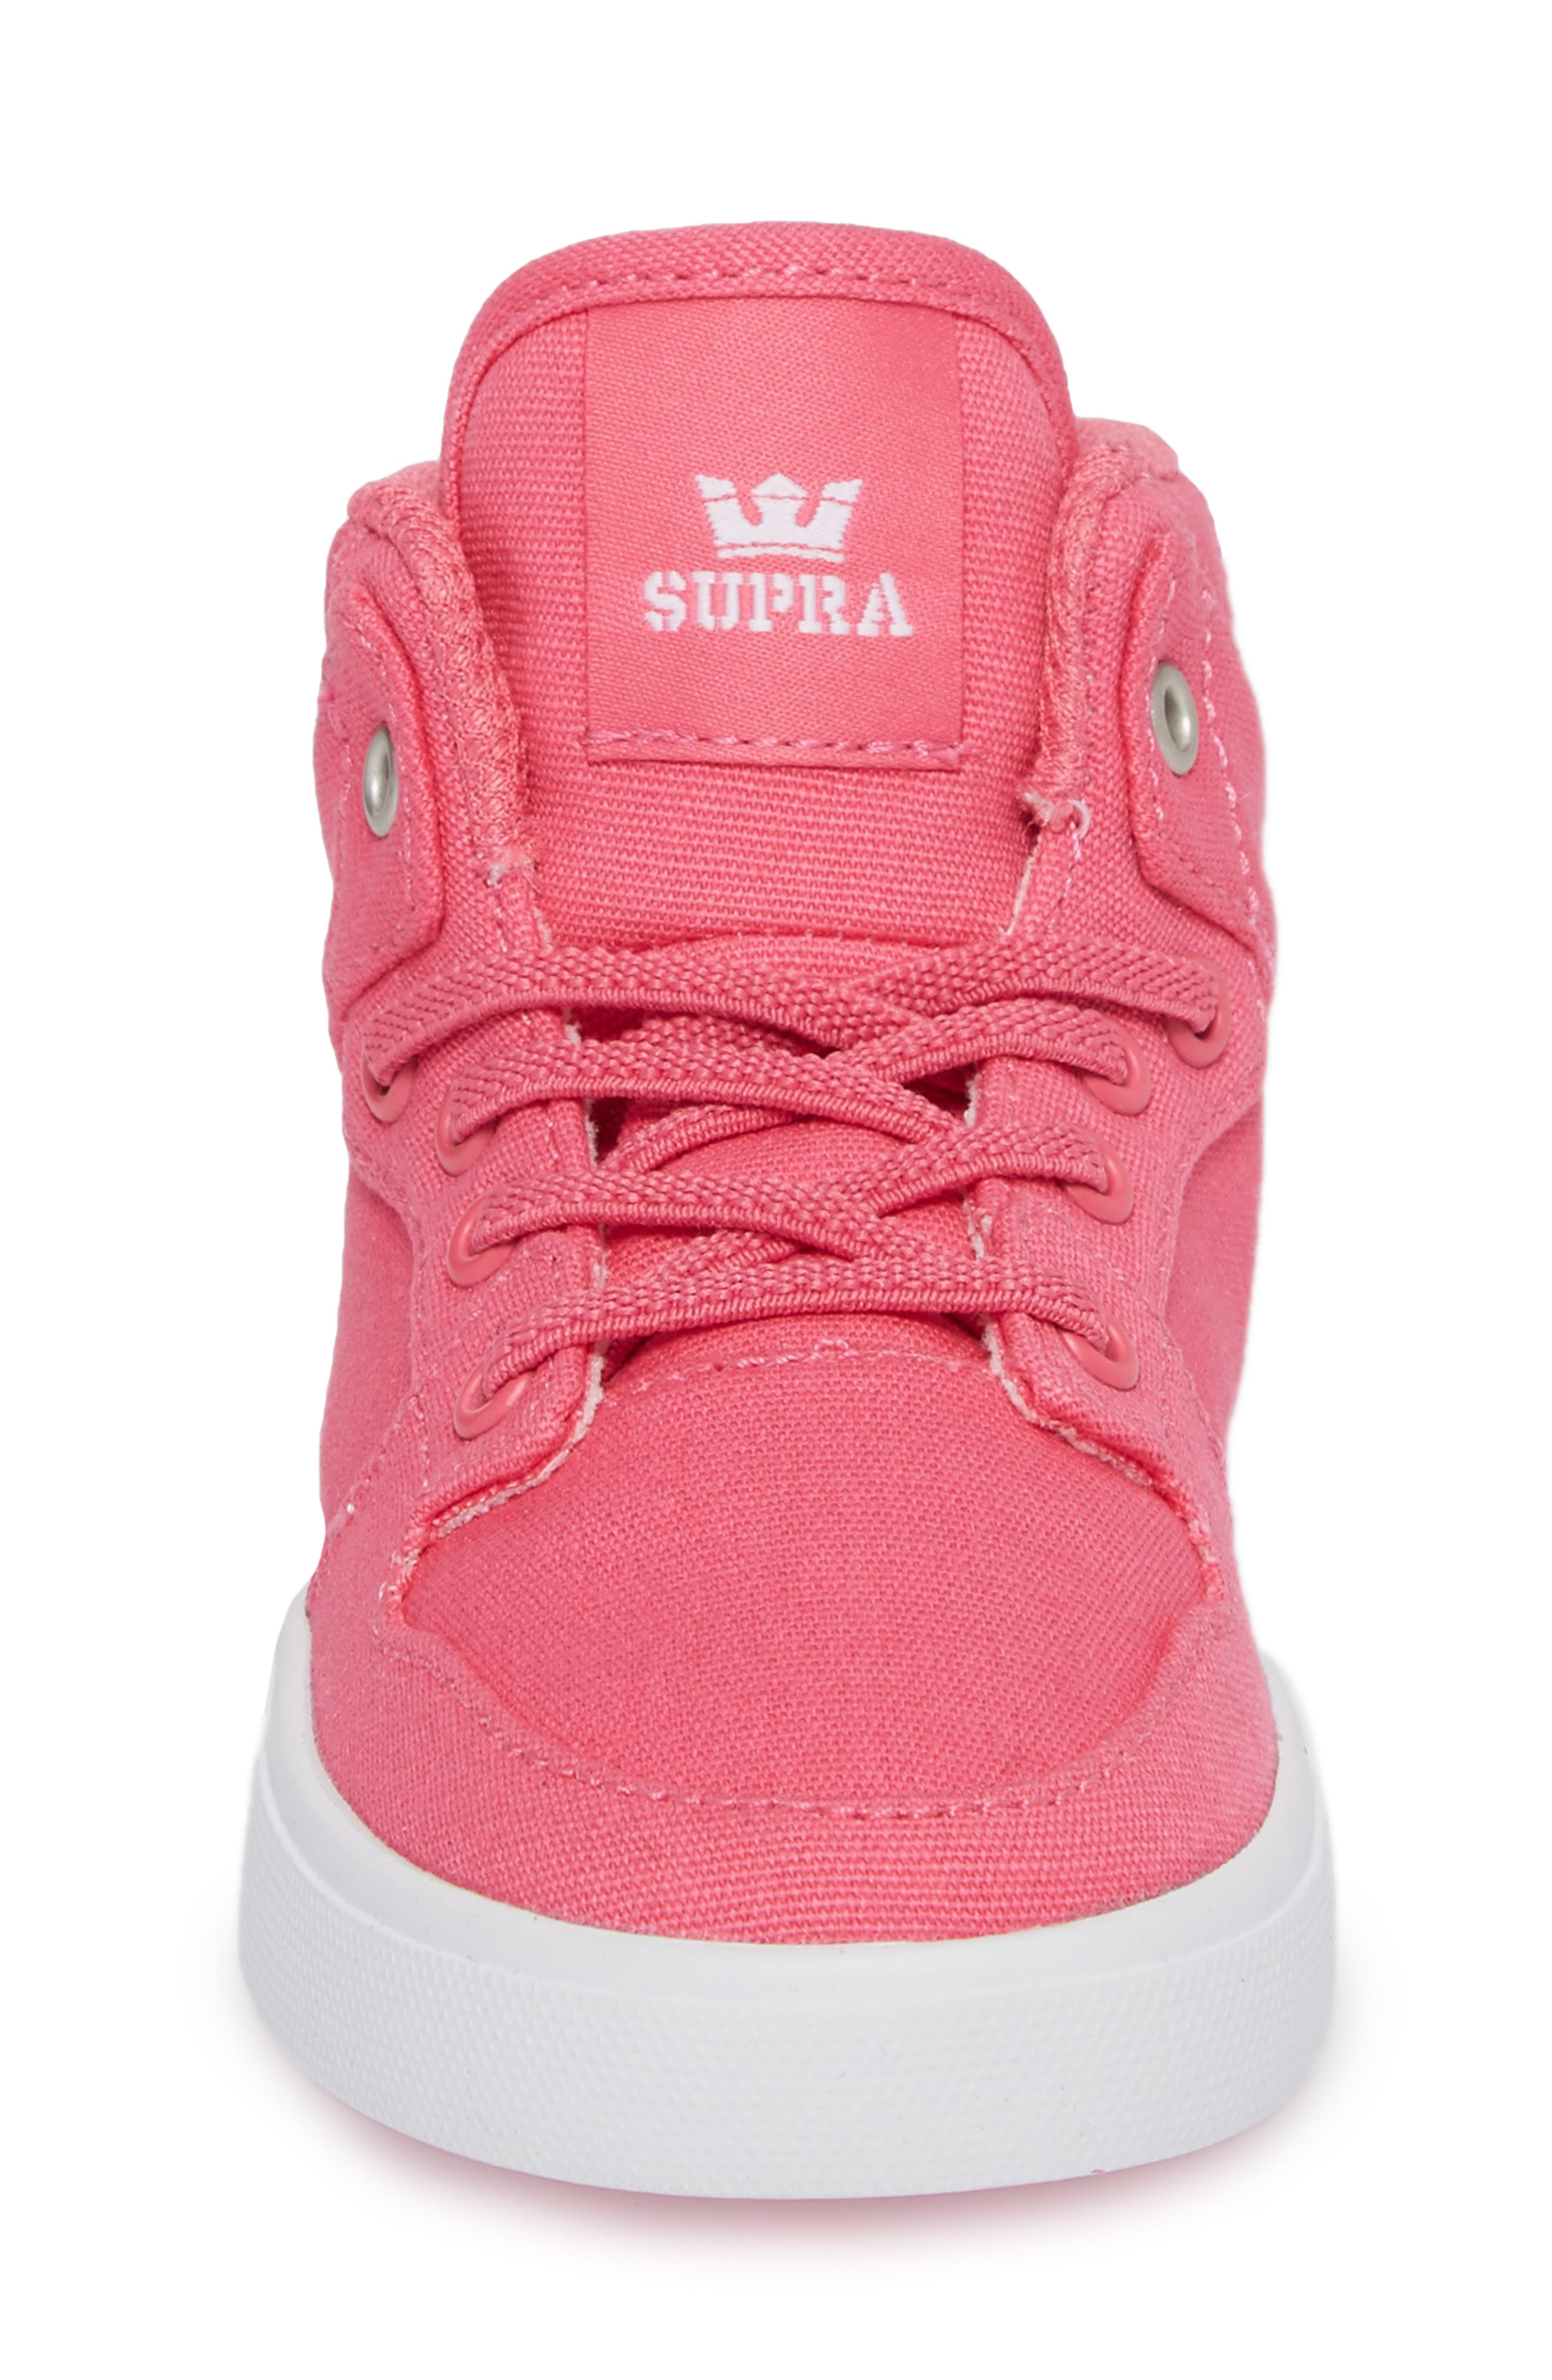 'Vaider' High Top Sneaker,                             Alternate thumbnail 4, color,                             Pink